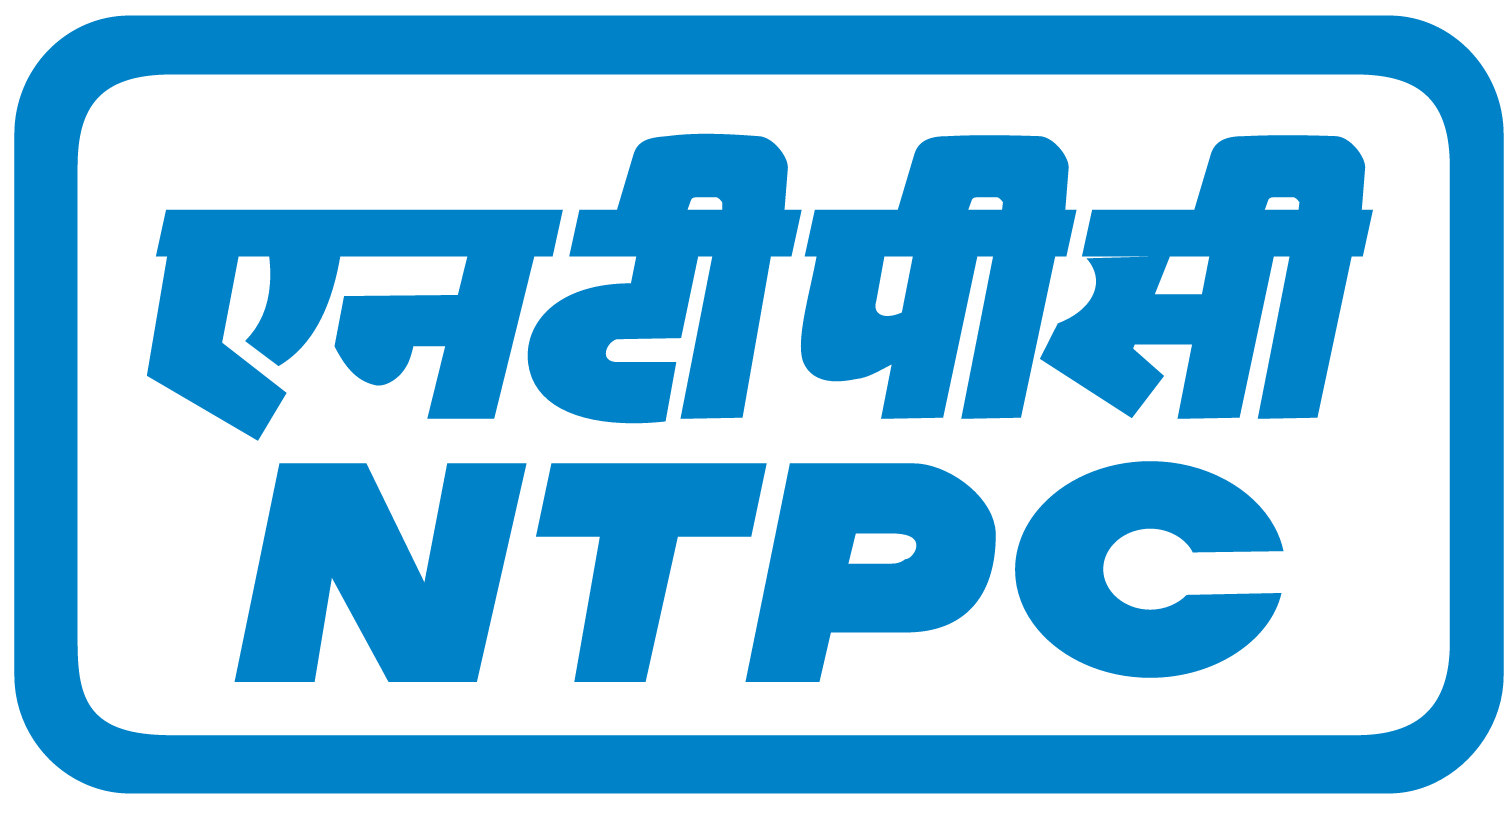 NTPC says its eco-friendly new aggregate will increase the use of ash produced by coal-fired thermal plants in India